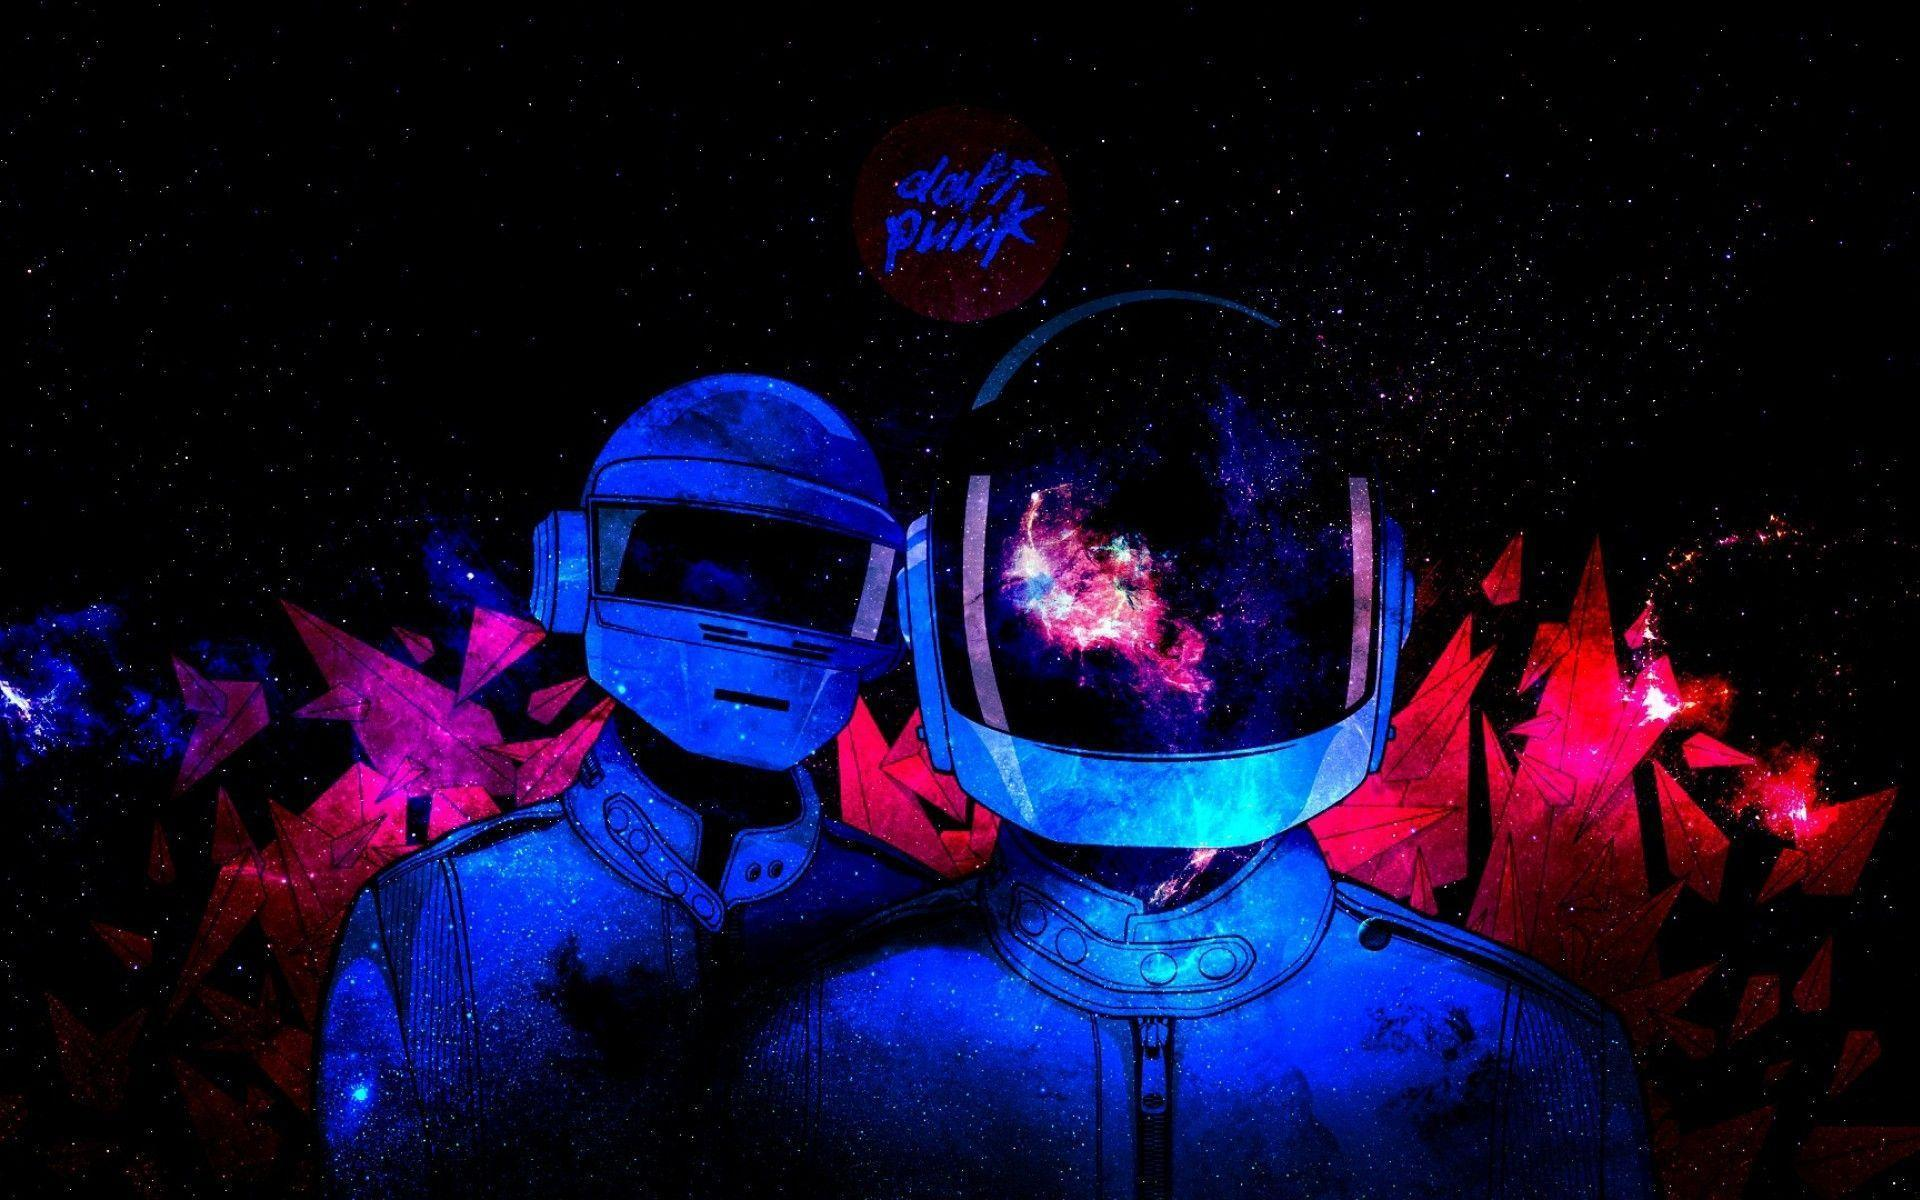 Outer Space Daft Punk Electronic Wallpaper Wide or HD | Artistic ...